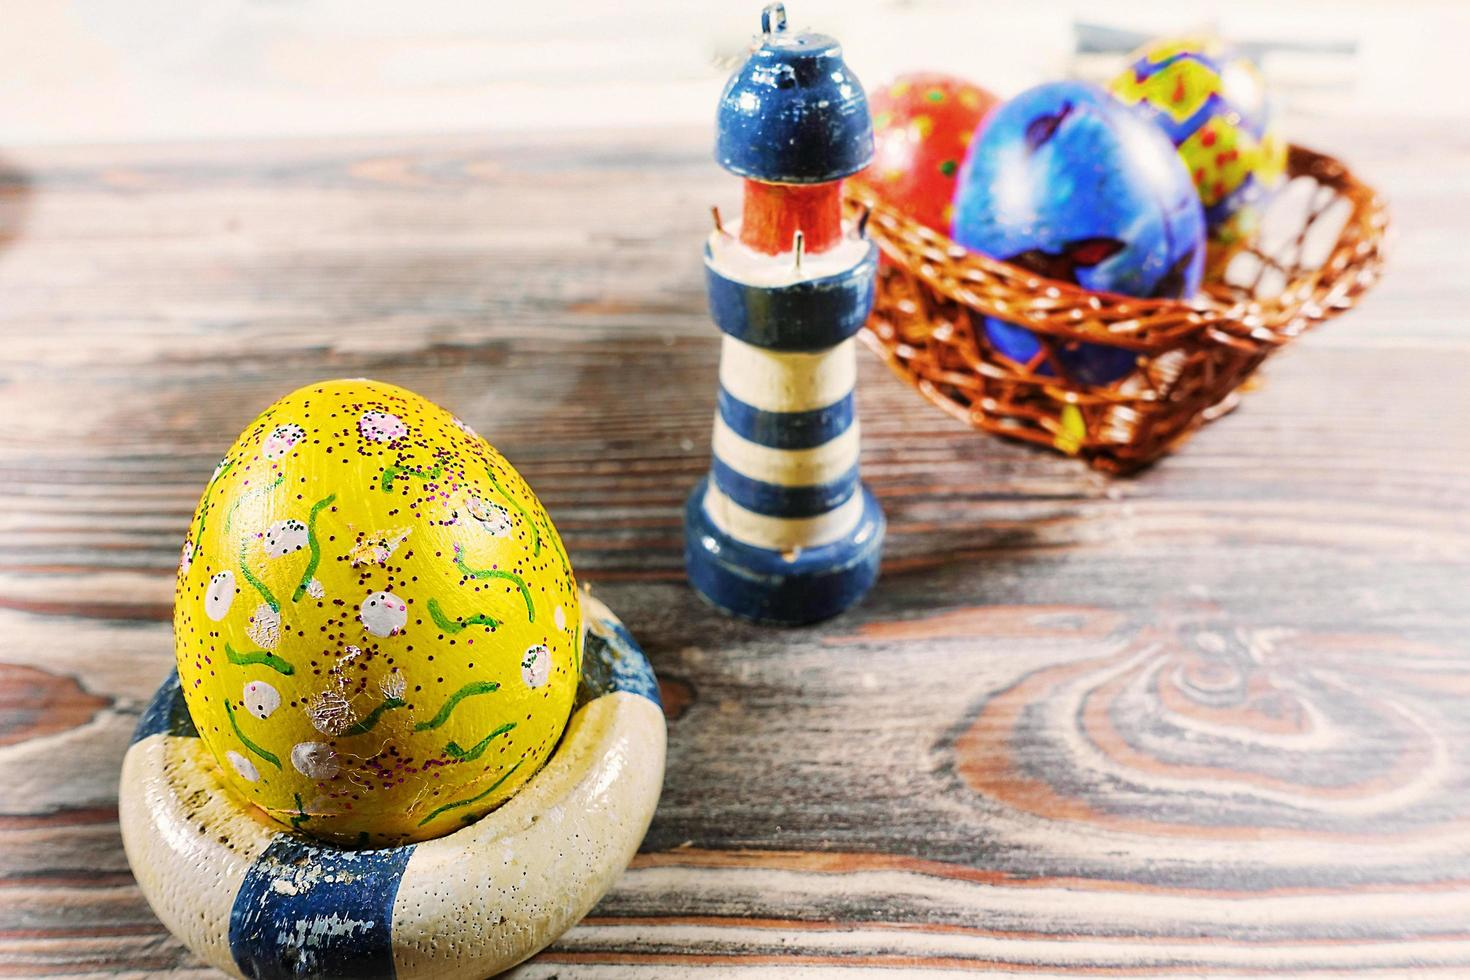 Paschal Easter Eggs and Lighthouse Toy Holiday Celebration photo